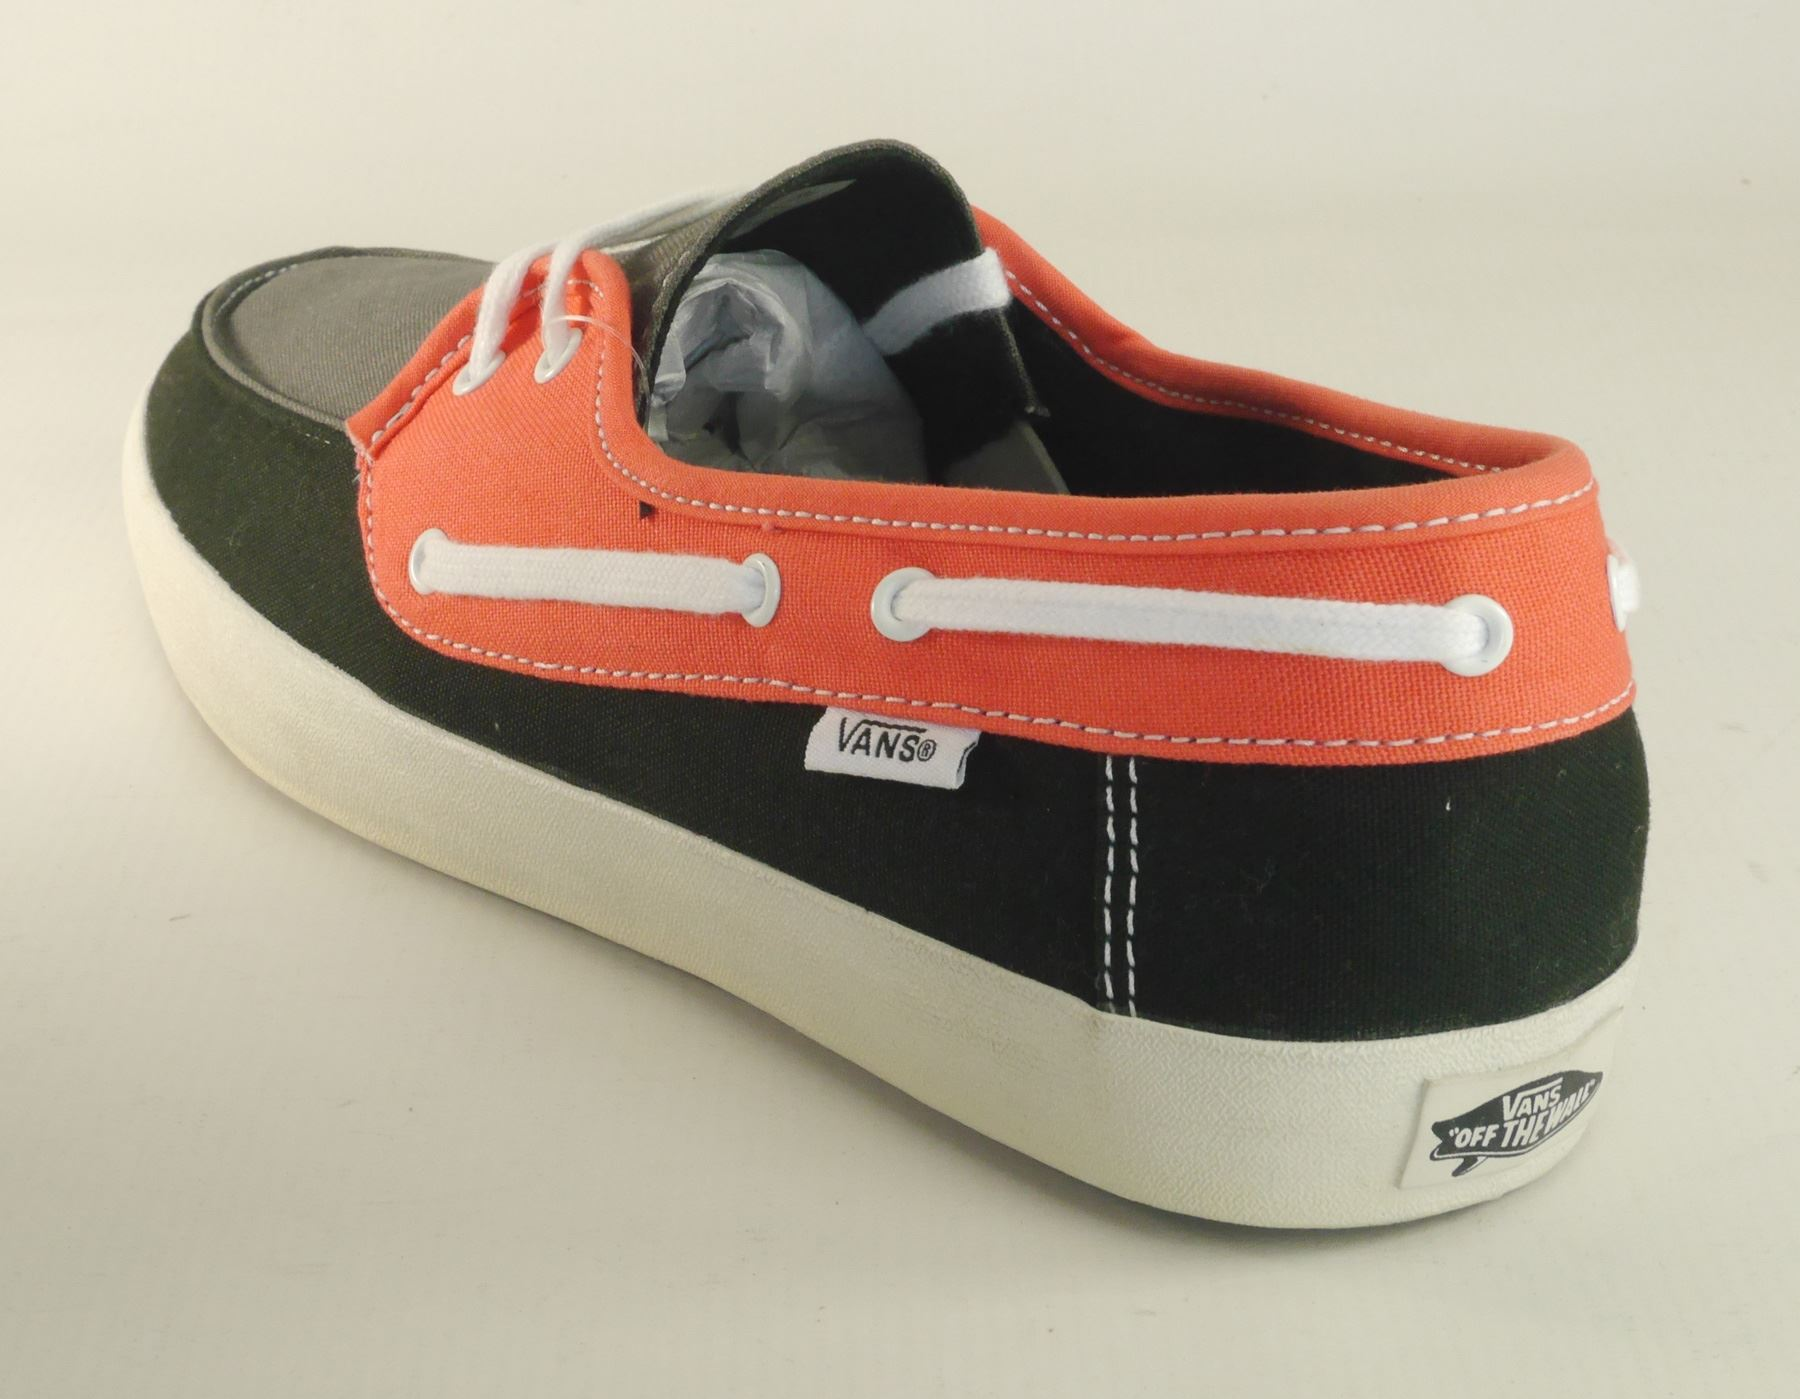 Details about Vans Chauffeur Mens Lace Up Canvas Pumps Boat Shoes Grey Red